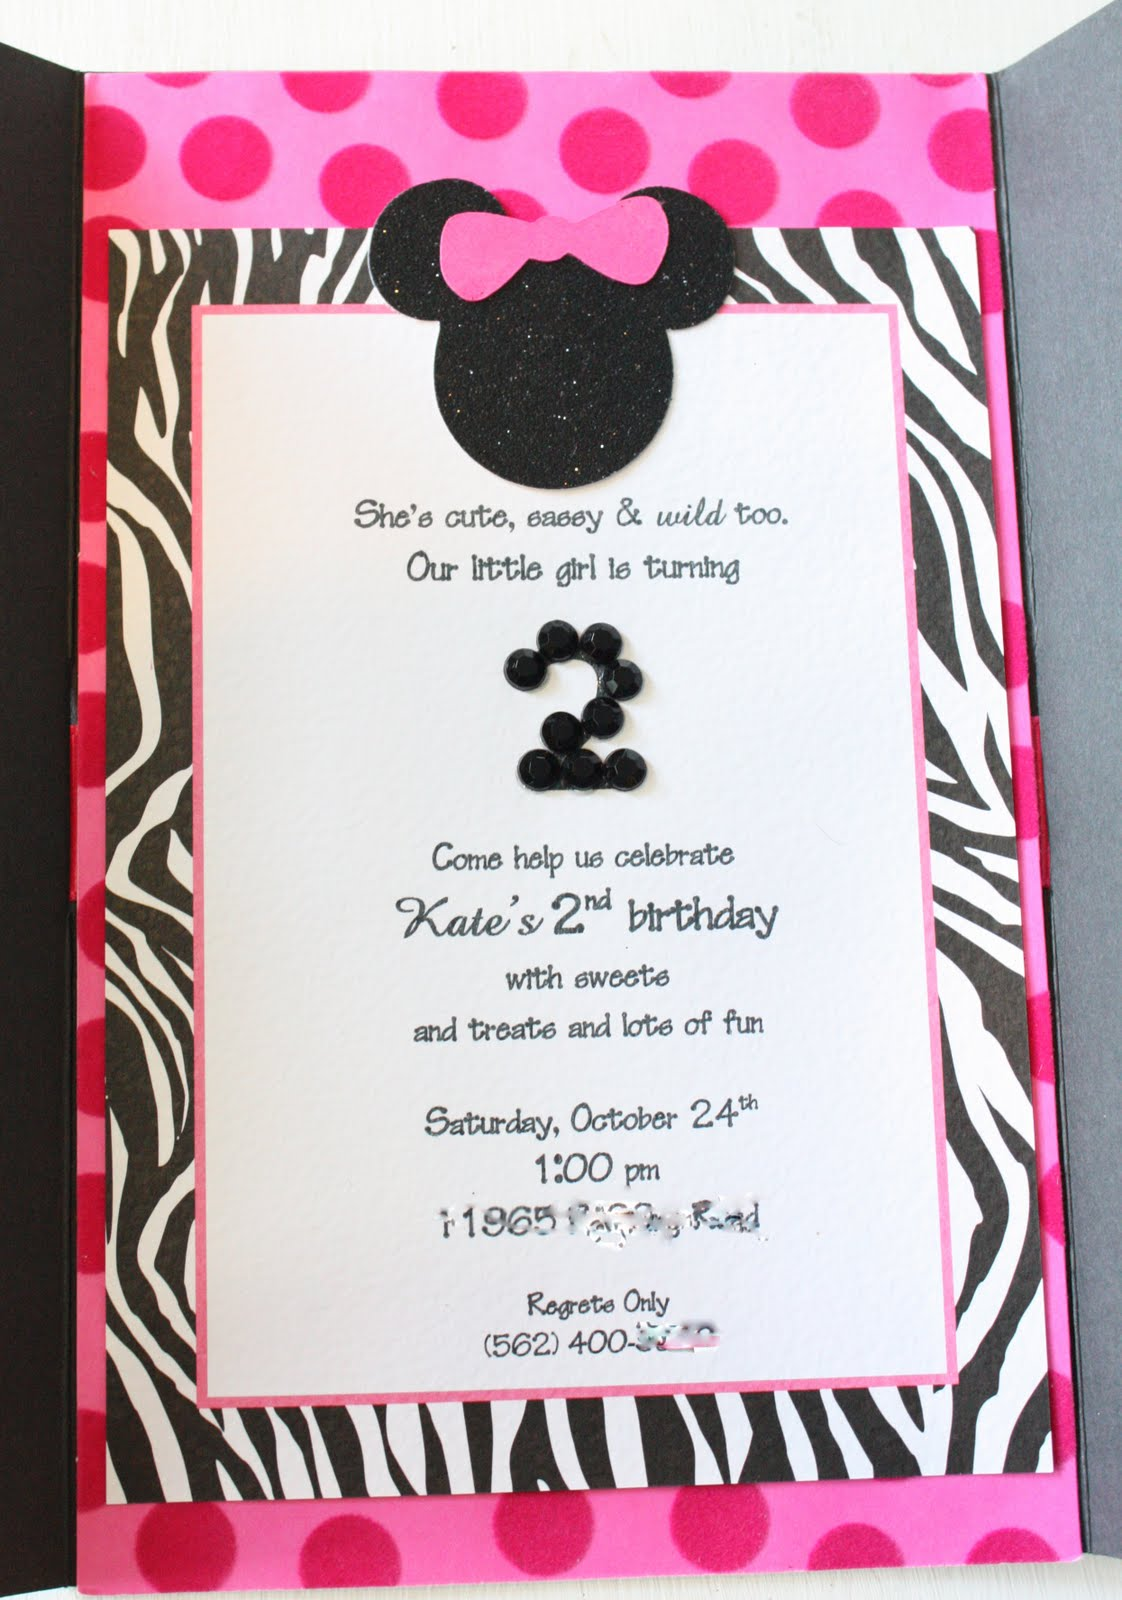 We added a glitter Minnie applique at the top of the invite I also